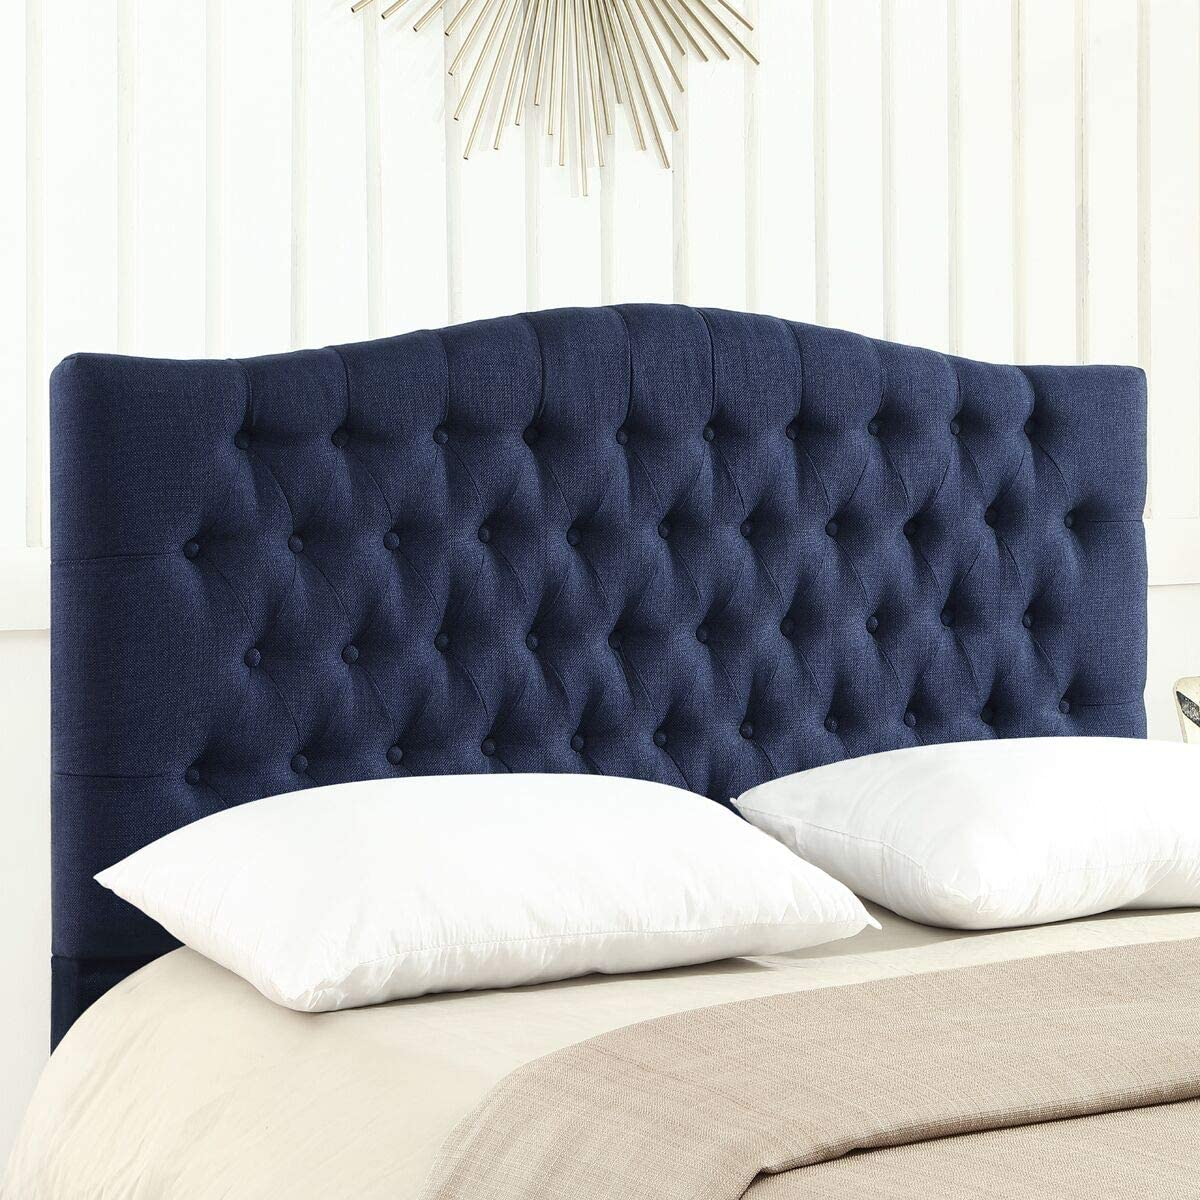 Amazon Com 24kf Upholstered Button Tufted Queen Headboard And Linen Fabric Queen Full Size Navy Blue Kitchen Dining